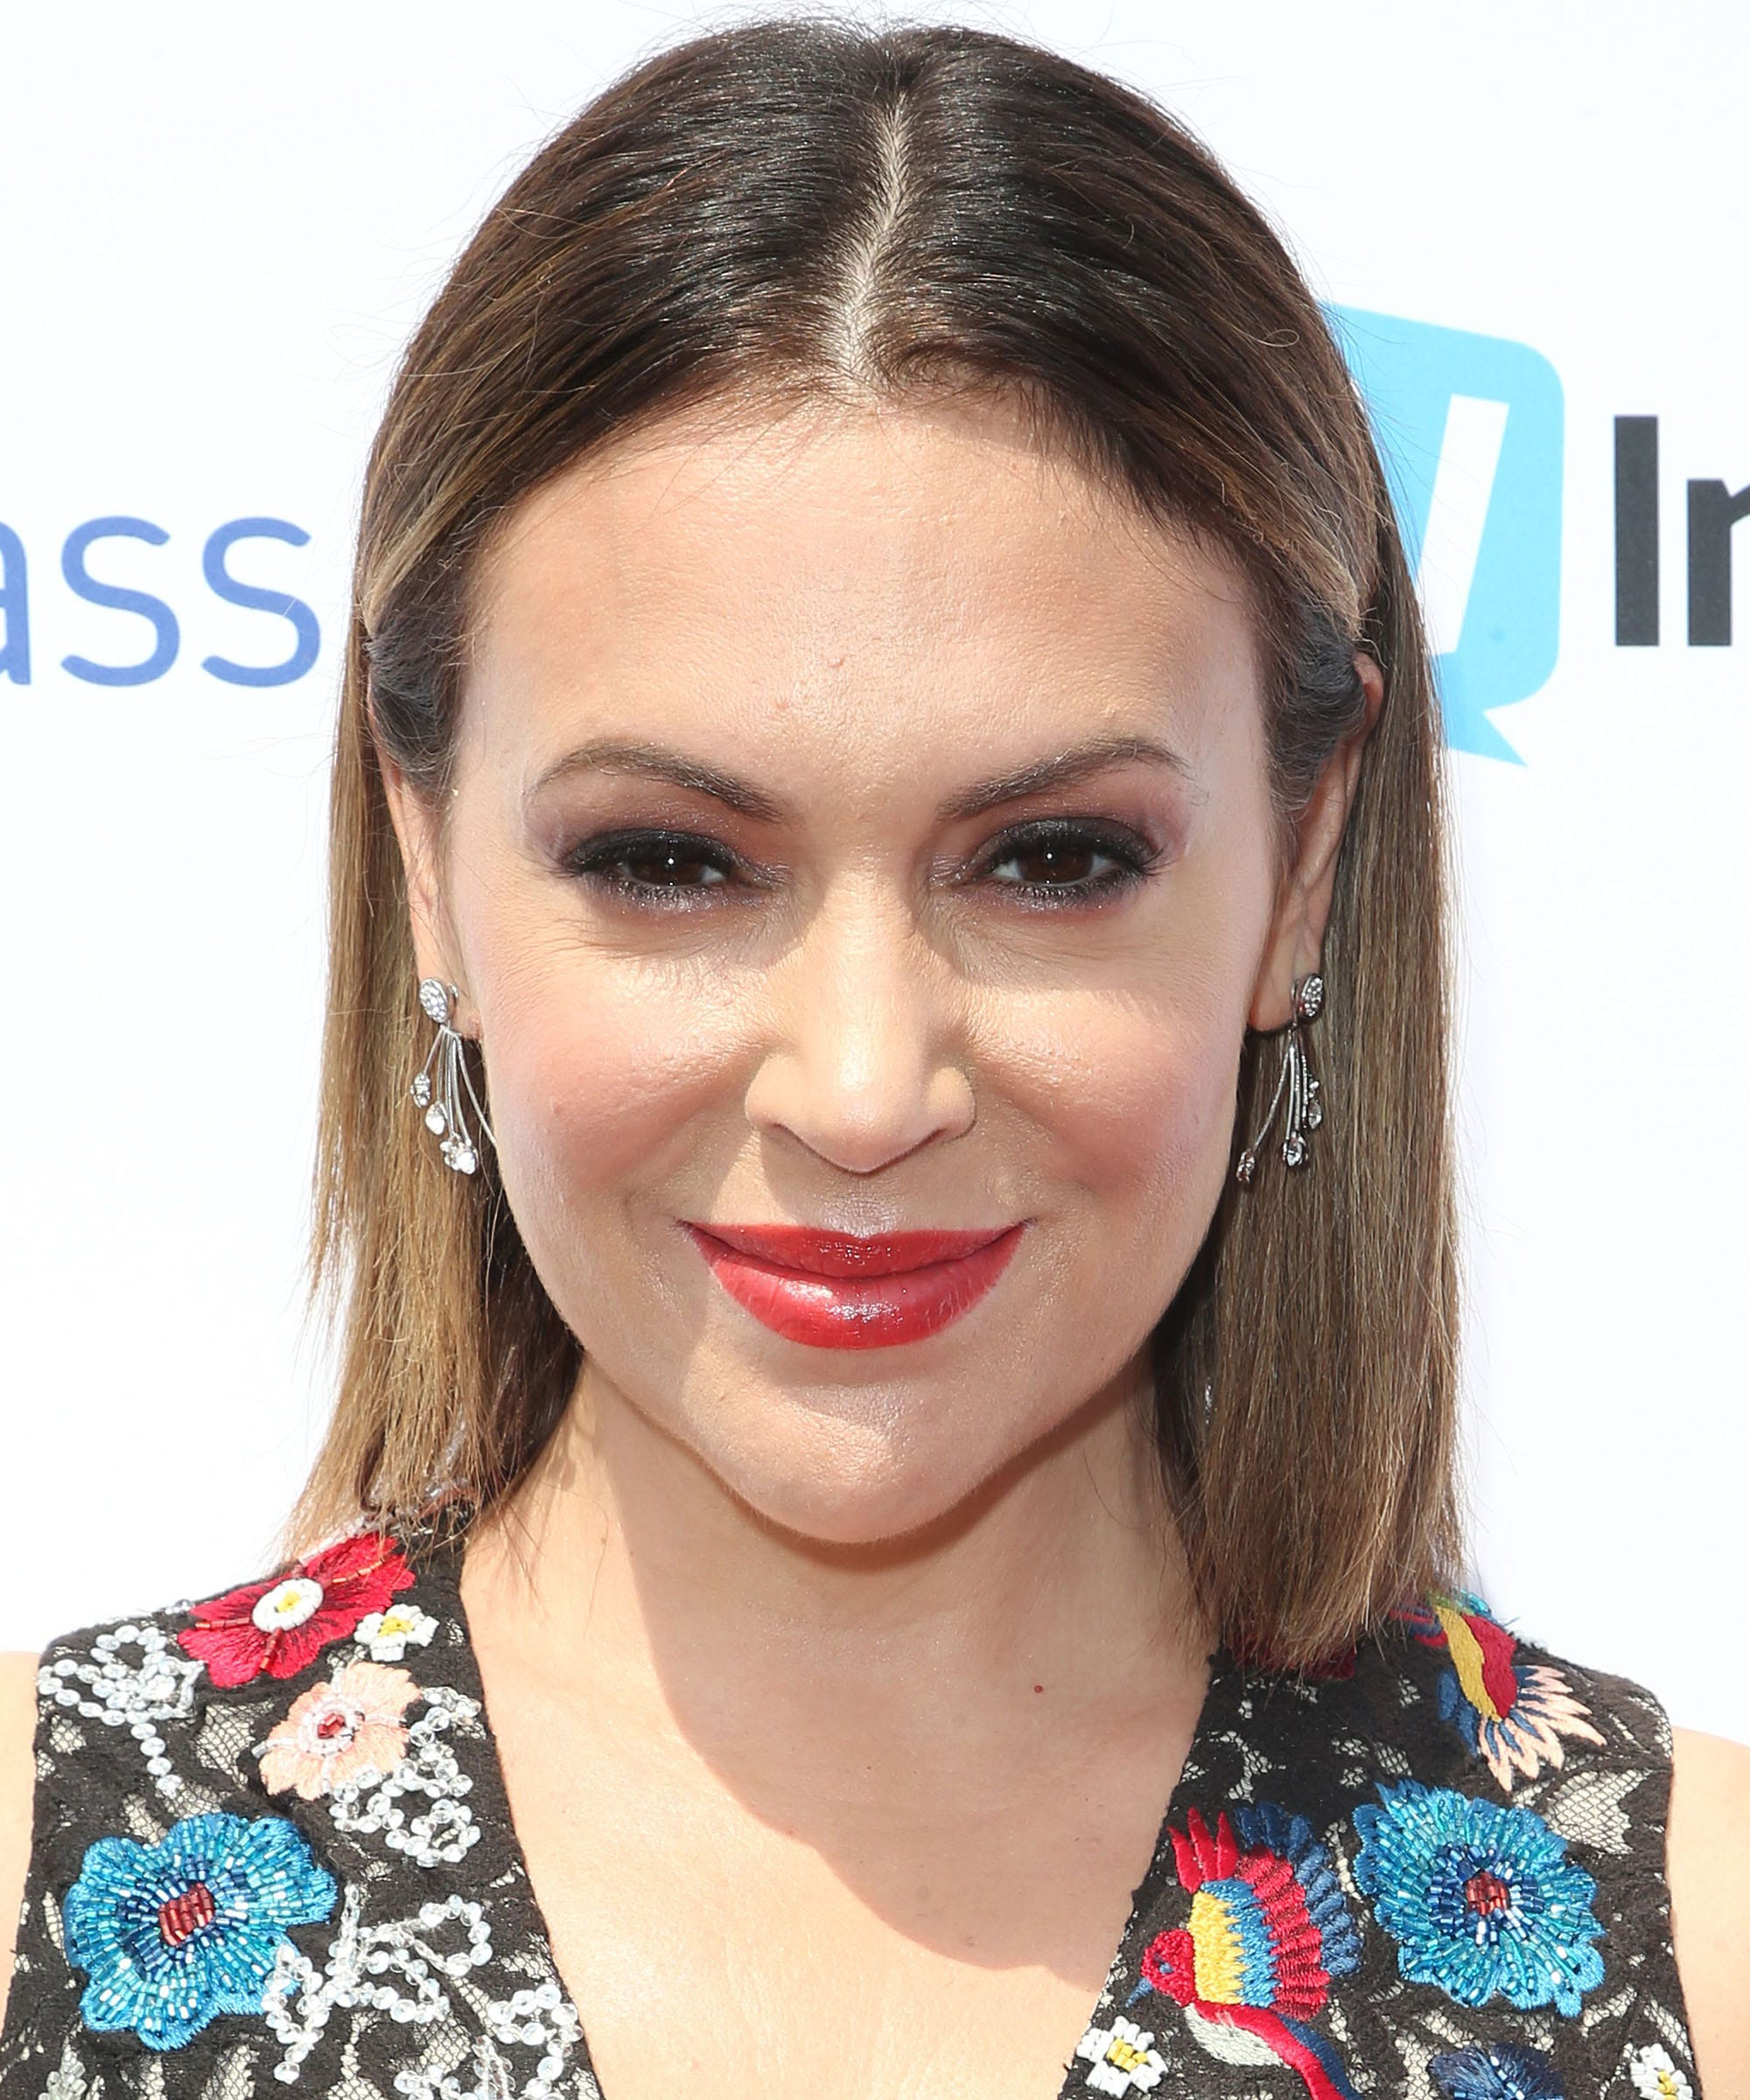 Alyssa Milano Minnie Driver Address Matt Damon Comments